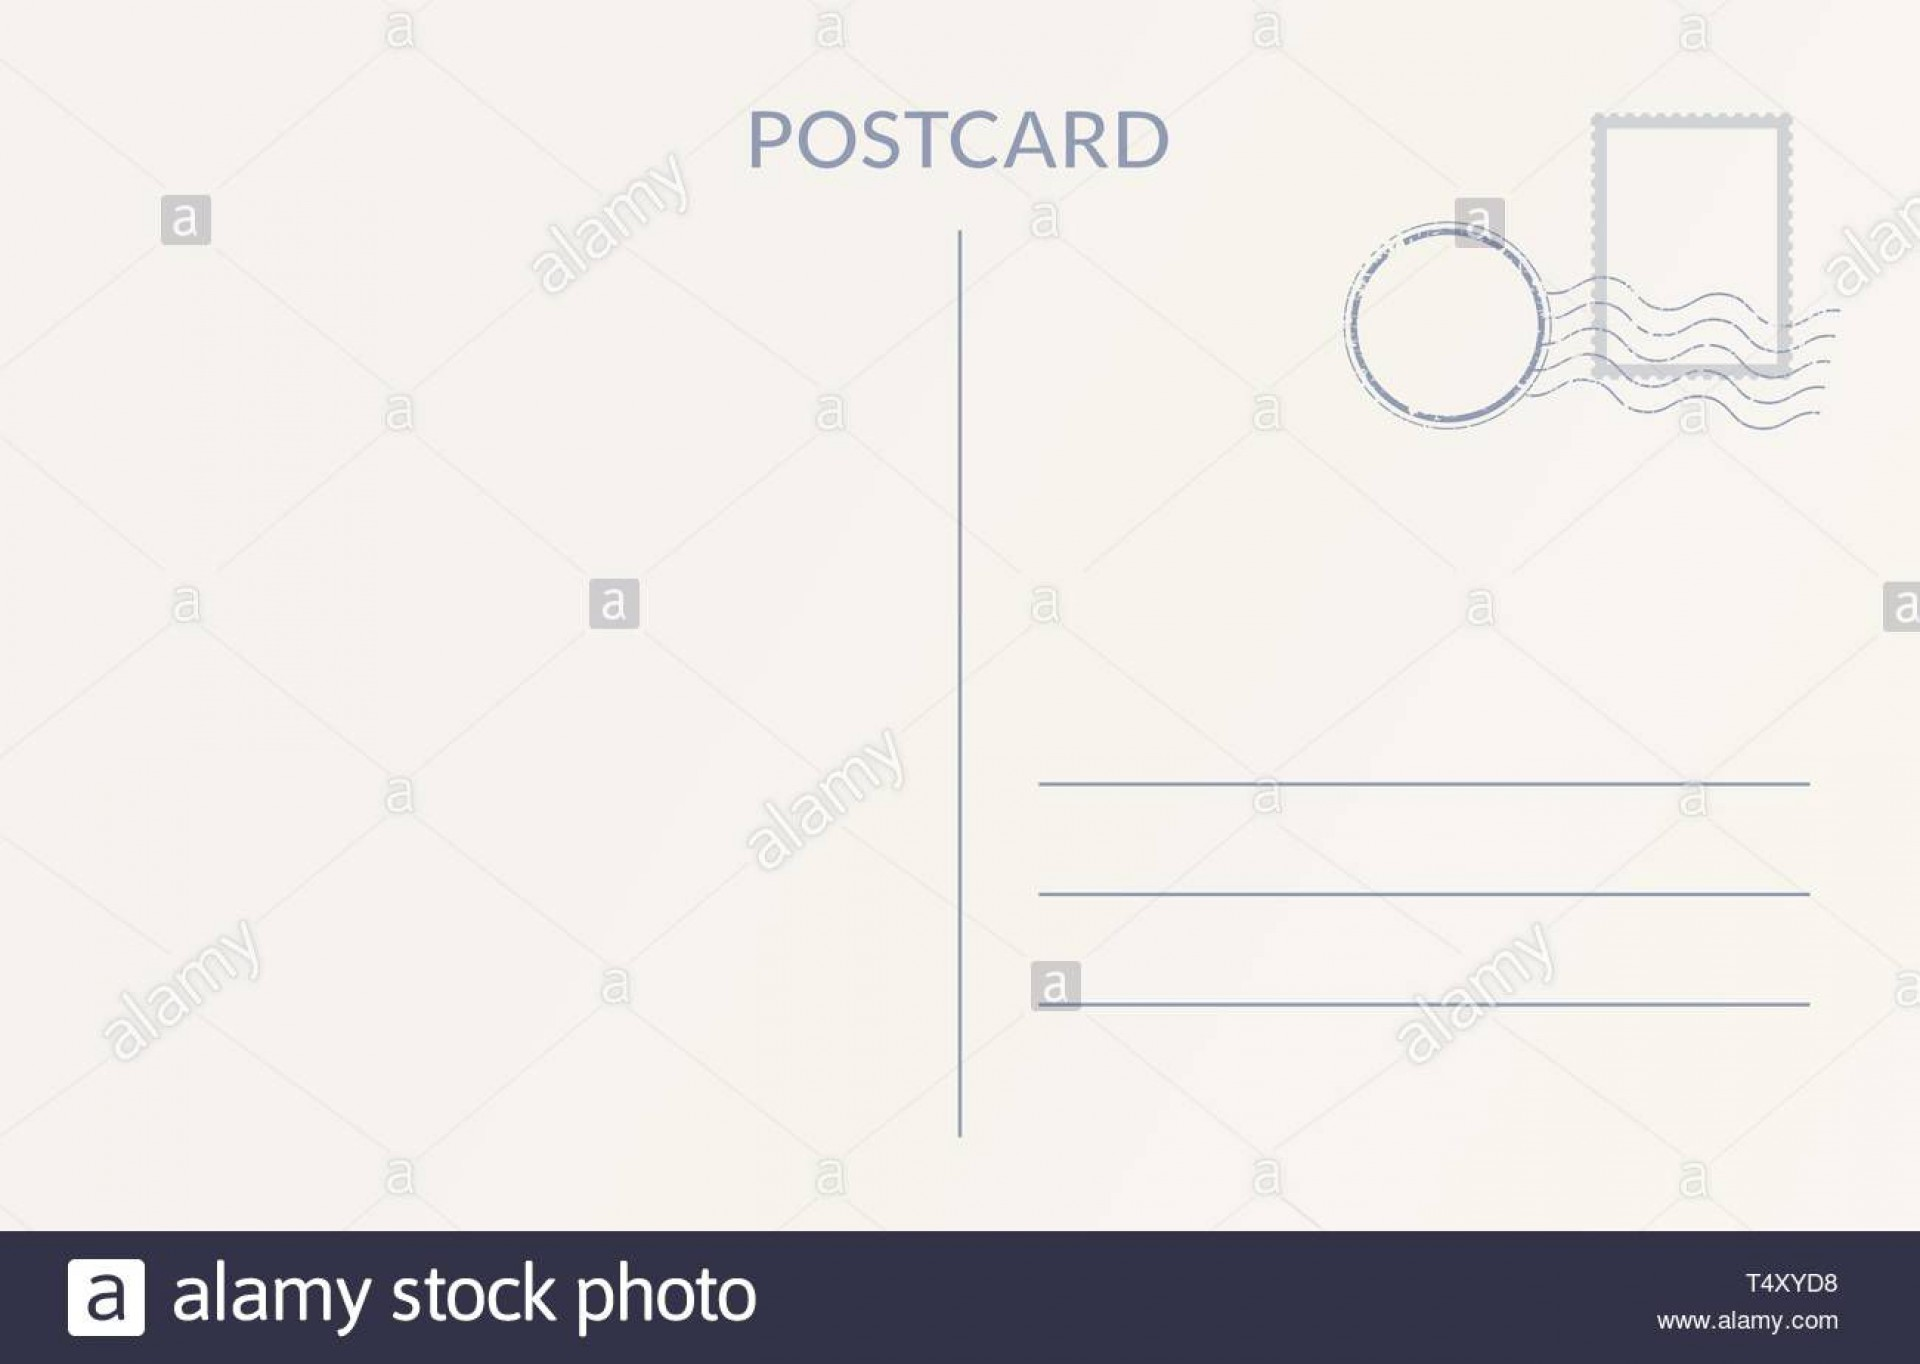 009 Impressive Postcard Template Front And Back Design  Free Word1920